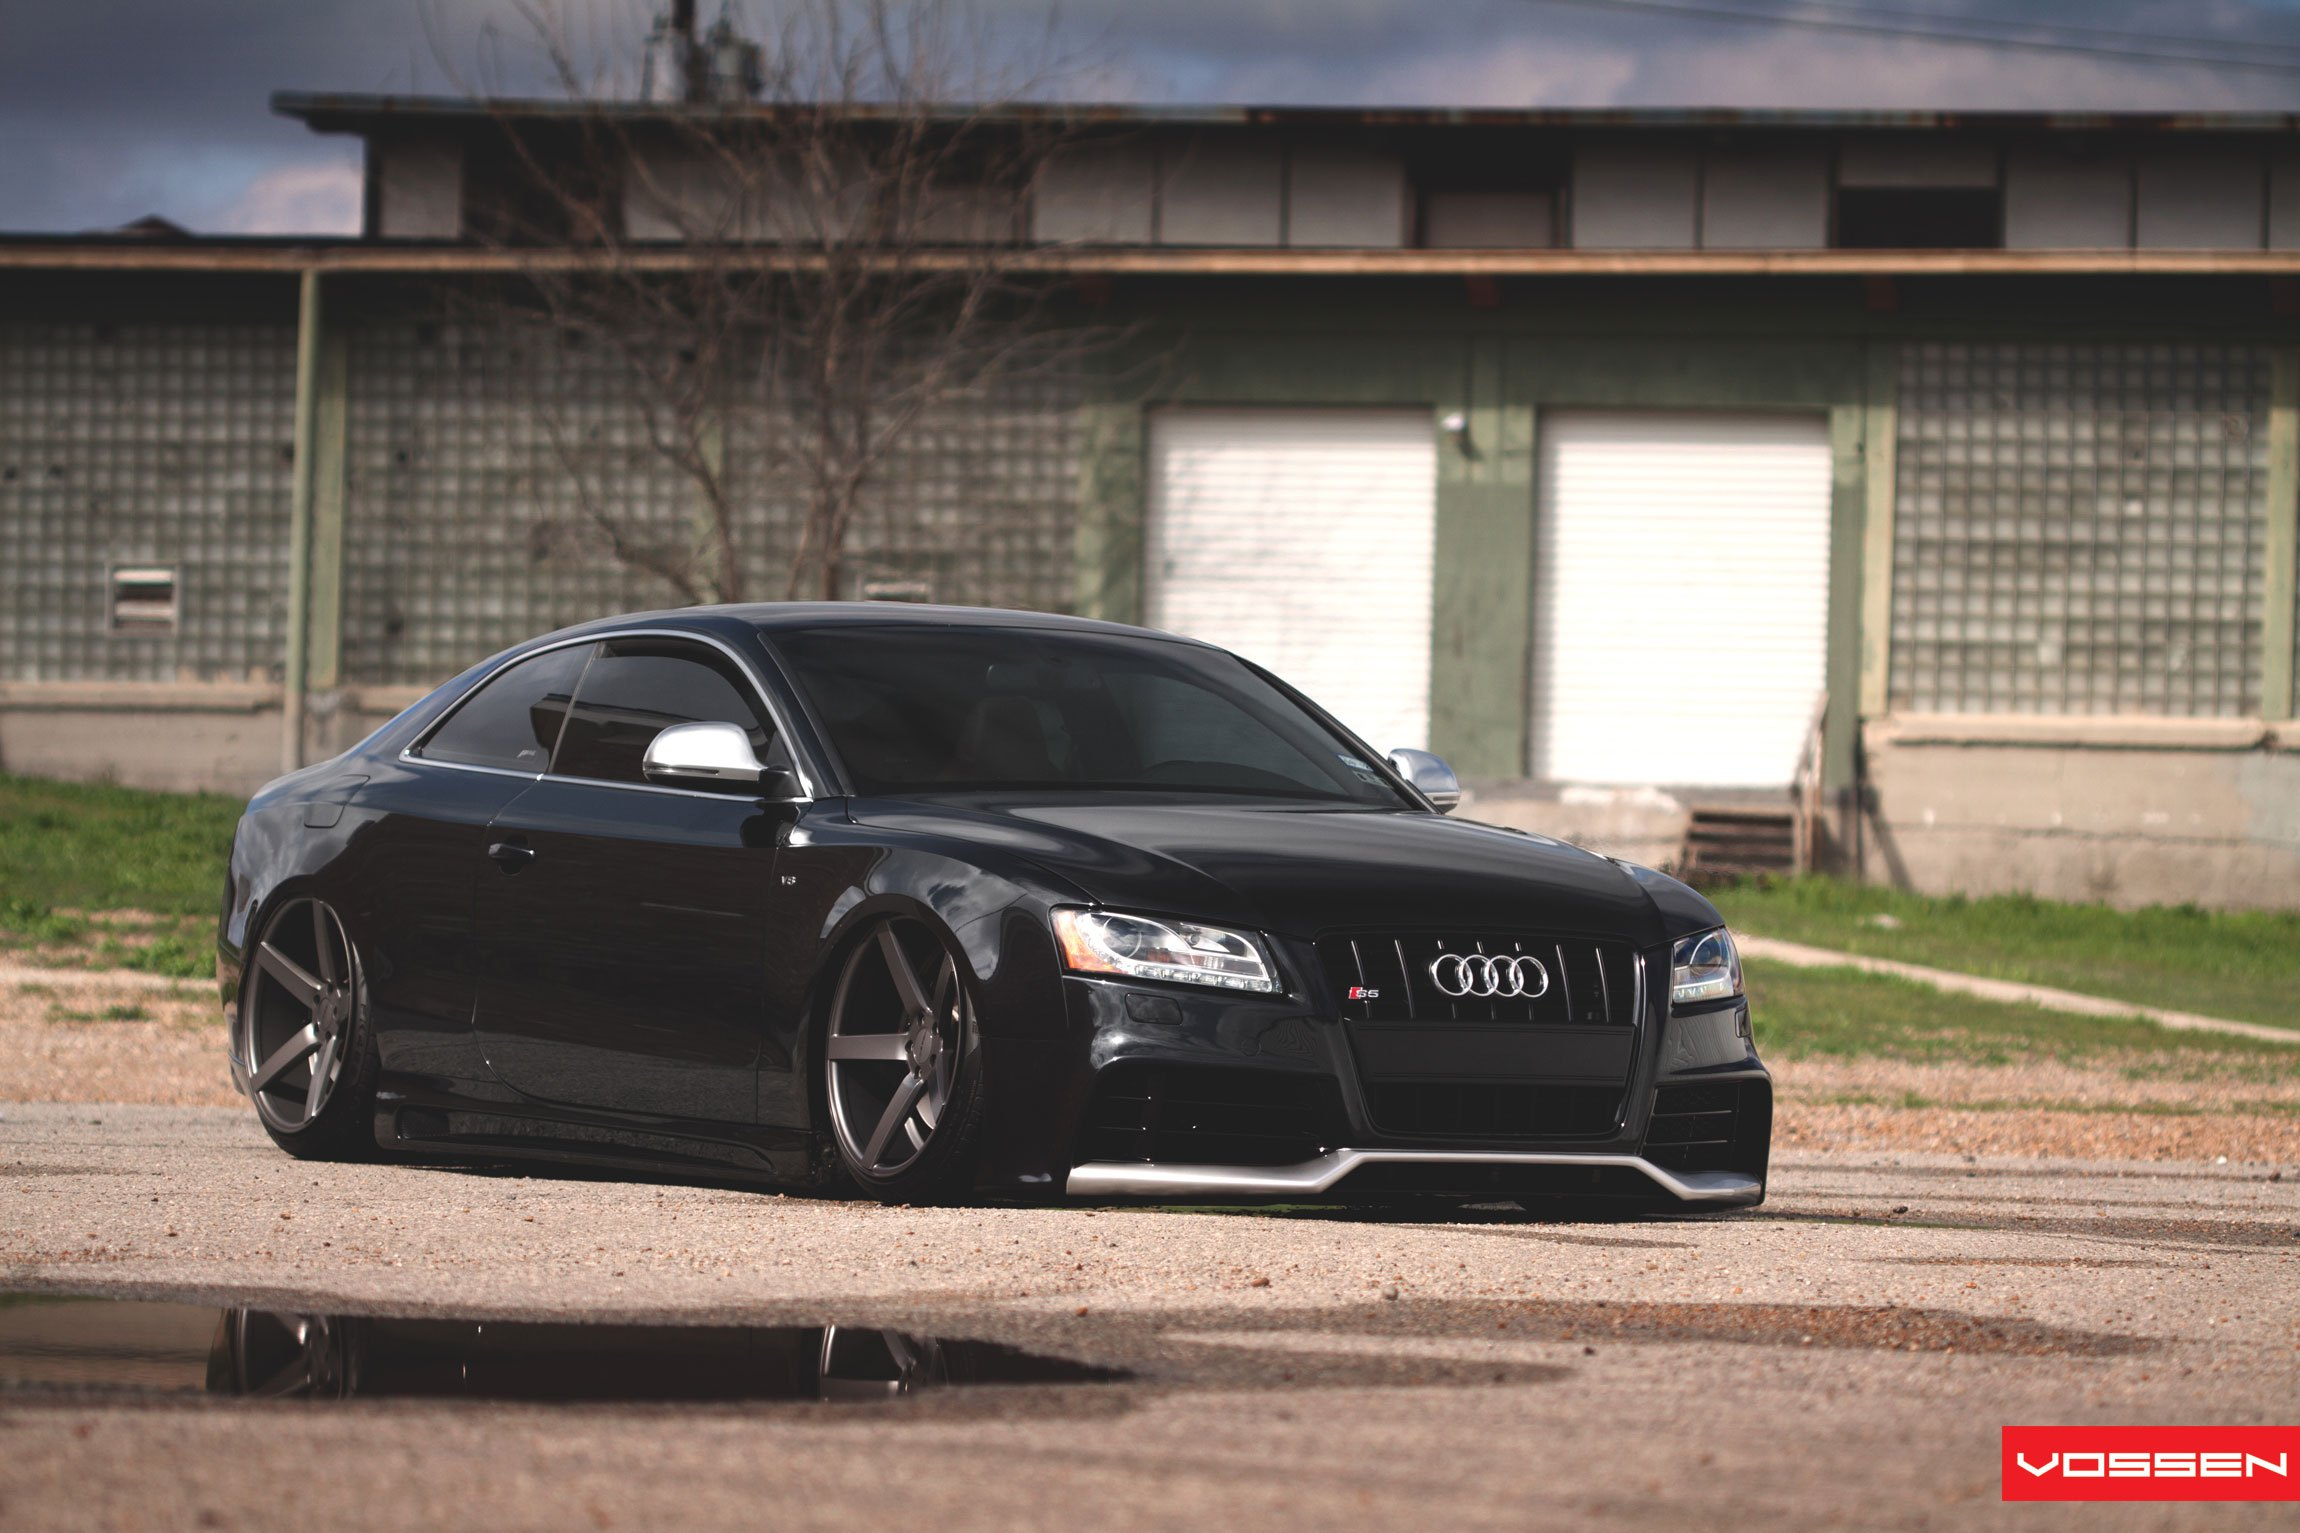 Stanced Out Audi S Goes Dark With Custom Parts CARiDcom Gallery - Audi s5 custom